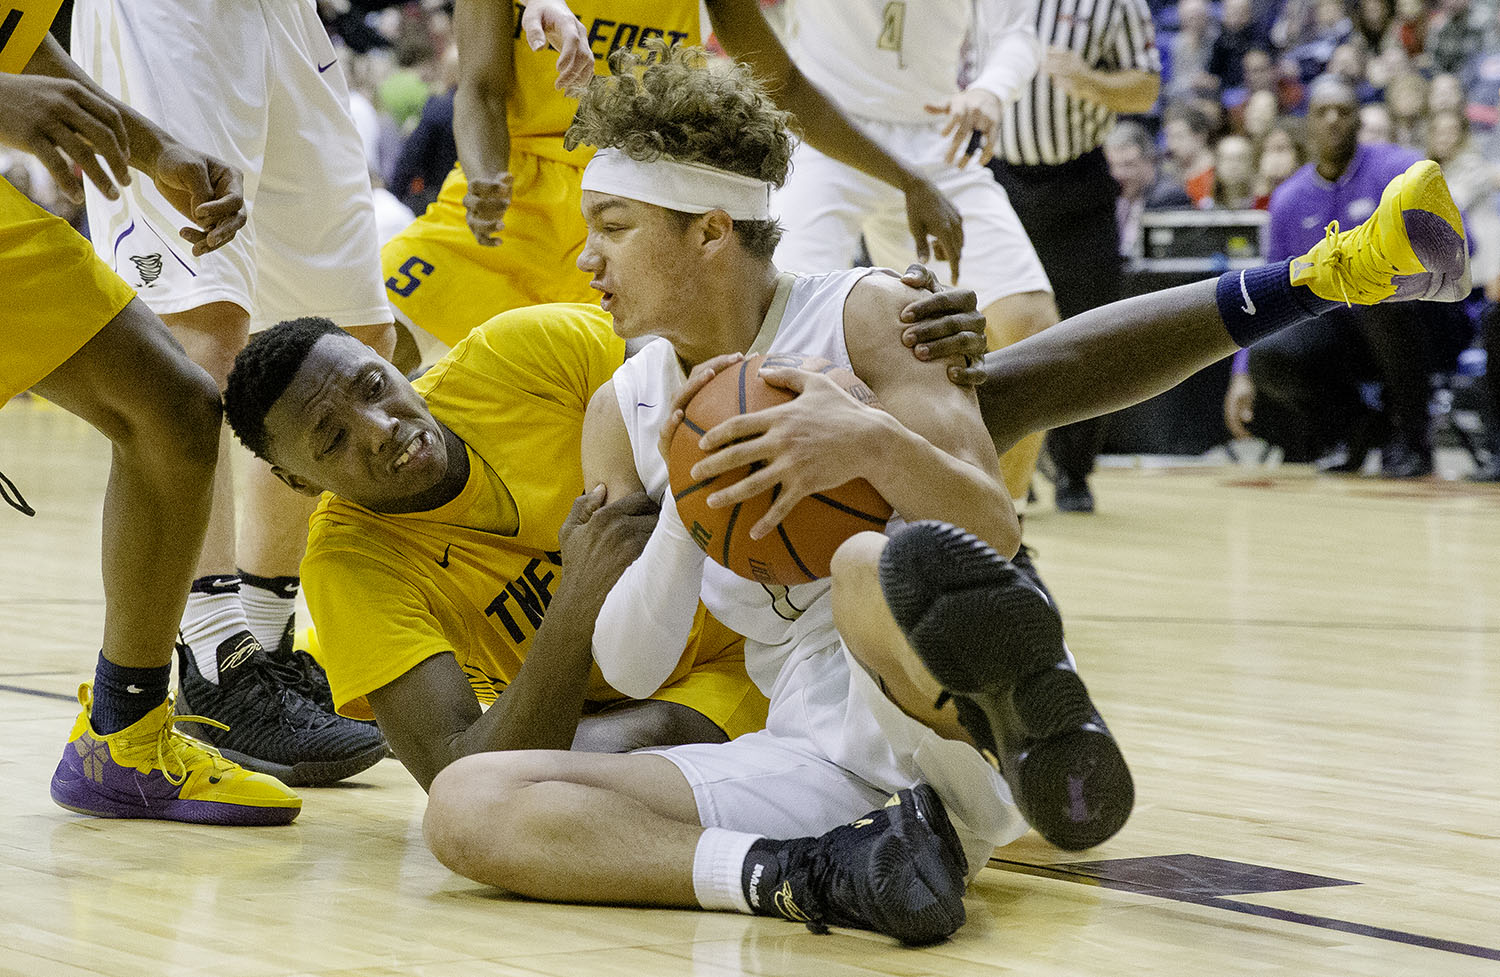 Sacred Heart-Griffin's Isaiah Thompson grabs a loose ball from Southeast's Devin Blue-Robinson during the Boys City Tournament at the Bank of Springfield Center Friday, Jan. 18, 2019.  [Ted Schurter/The State Journal-Register]